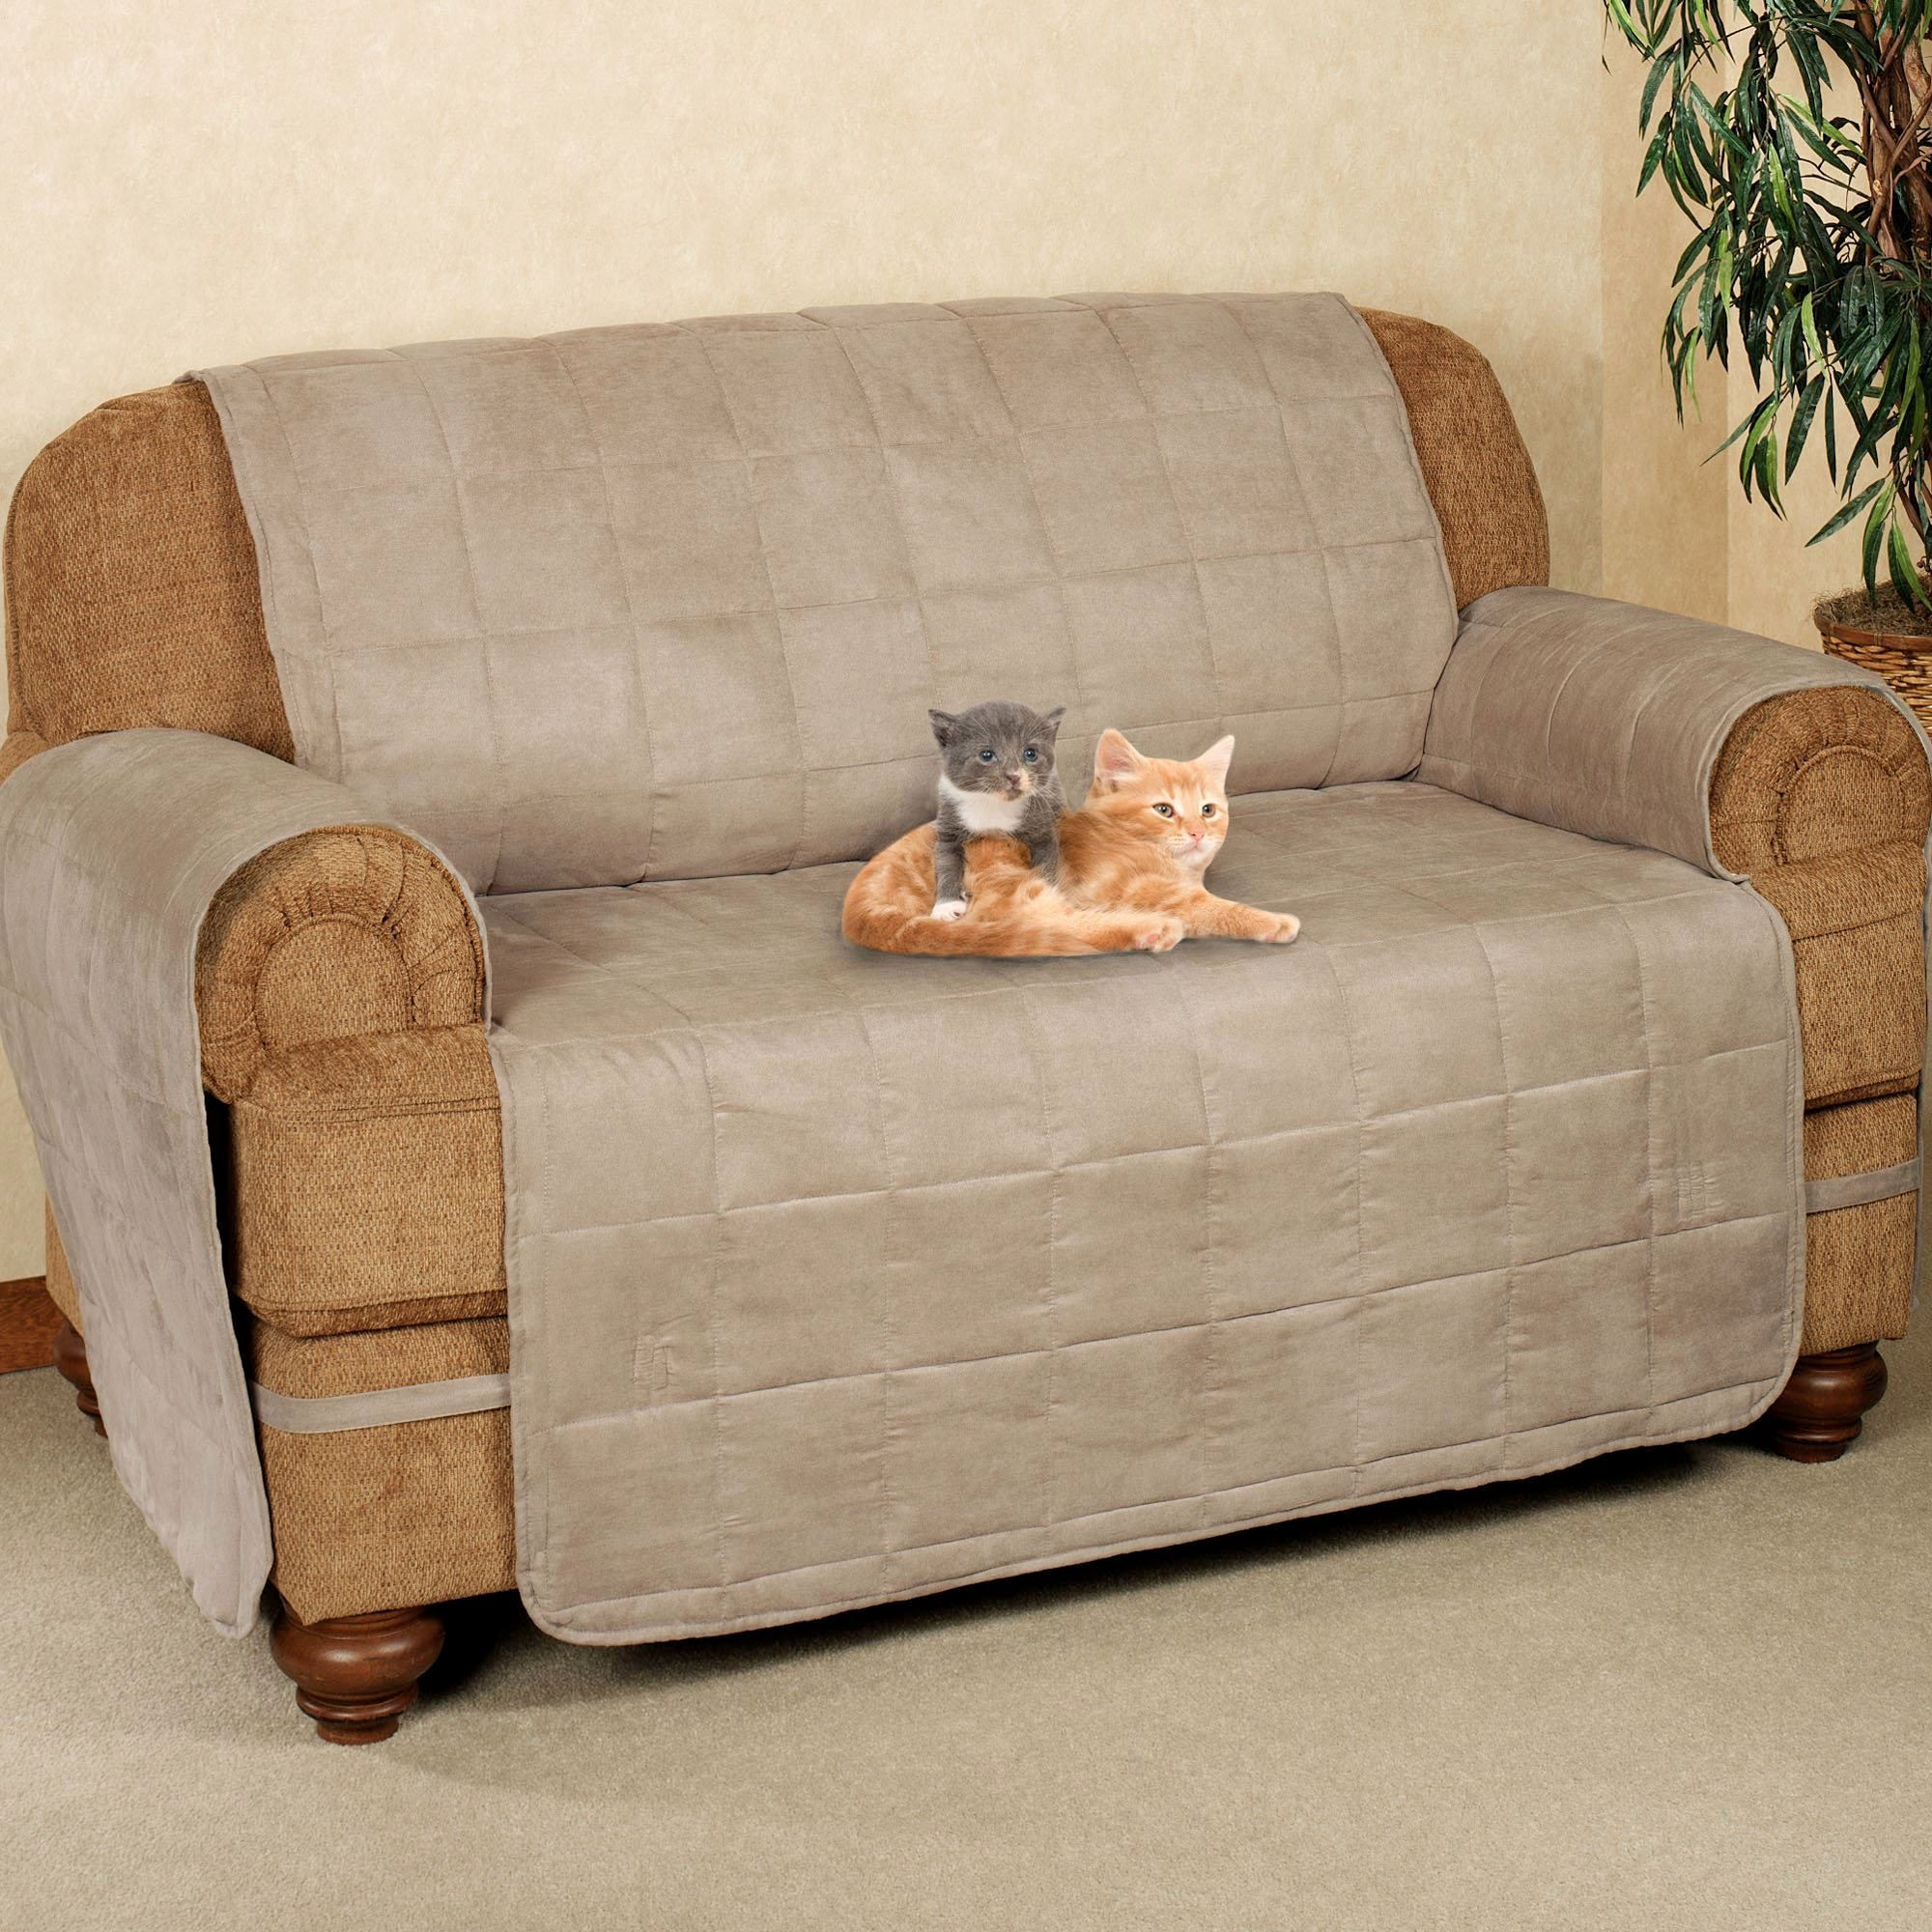 Idea Sure Fit Waterproof Sofa Cover Pics Lovely For Pets Furniture Covers Pet Protectors